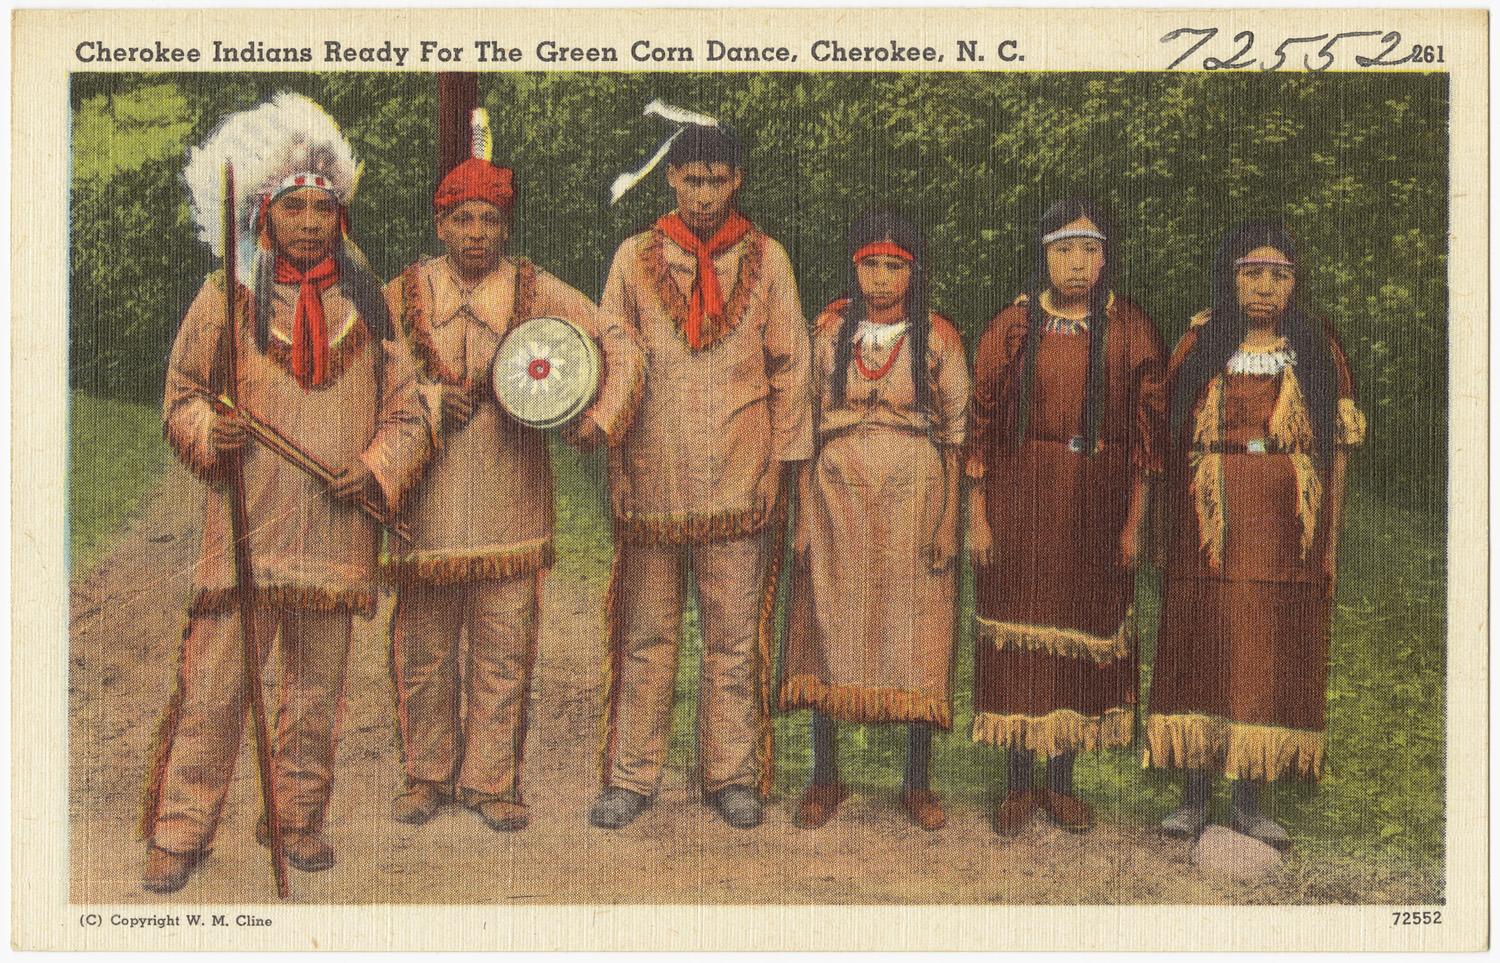 Native American Indian Pictures: Color Images of the Cherokee ...